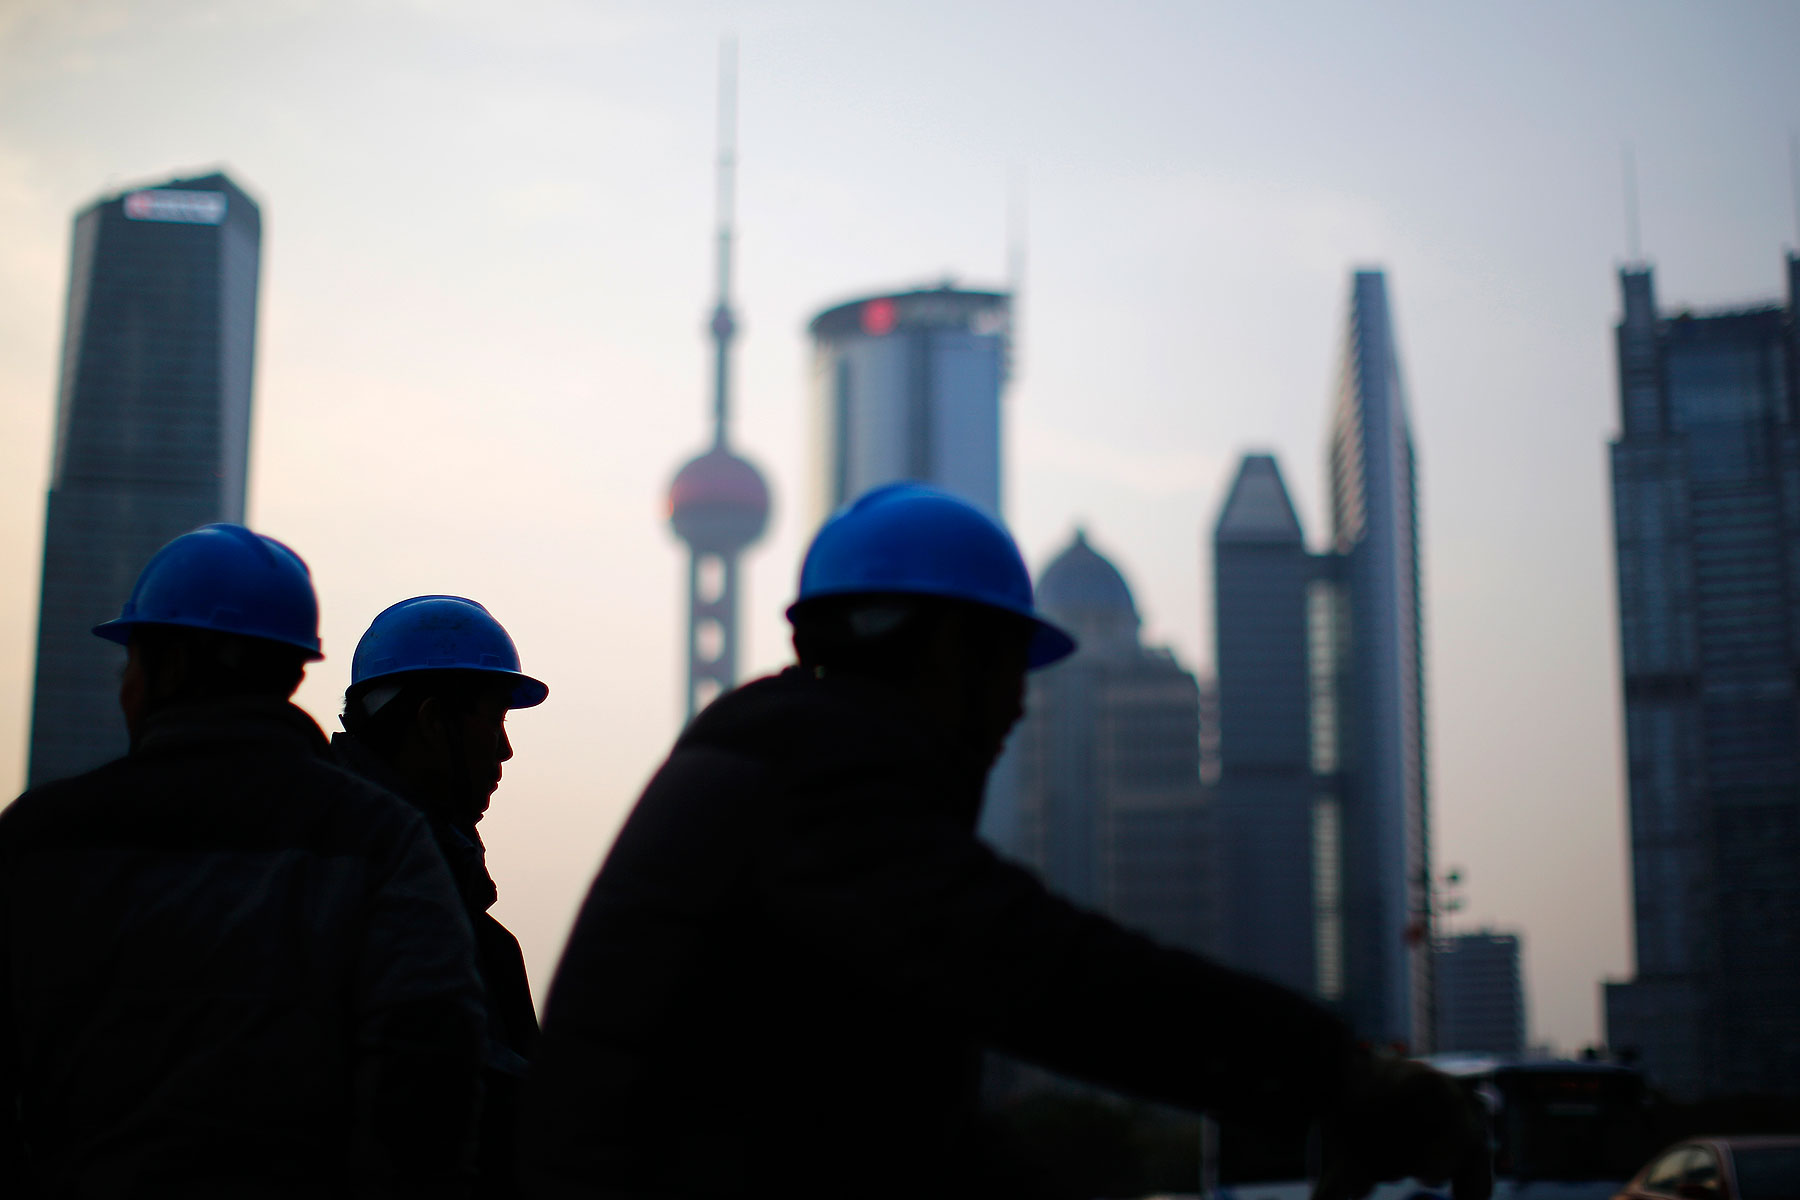 Construction workers stand on a street corner at the financial district of Pudong in Shanghai on March 11, 2014